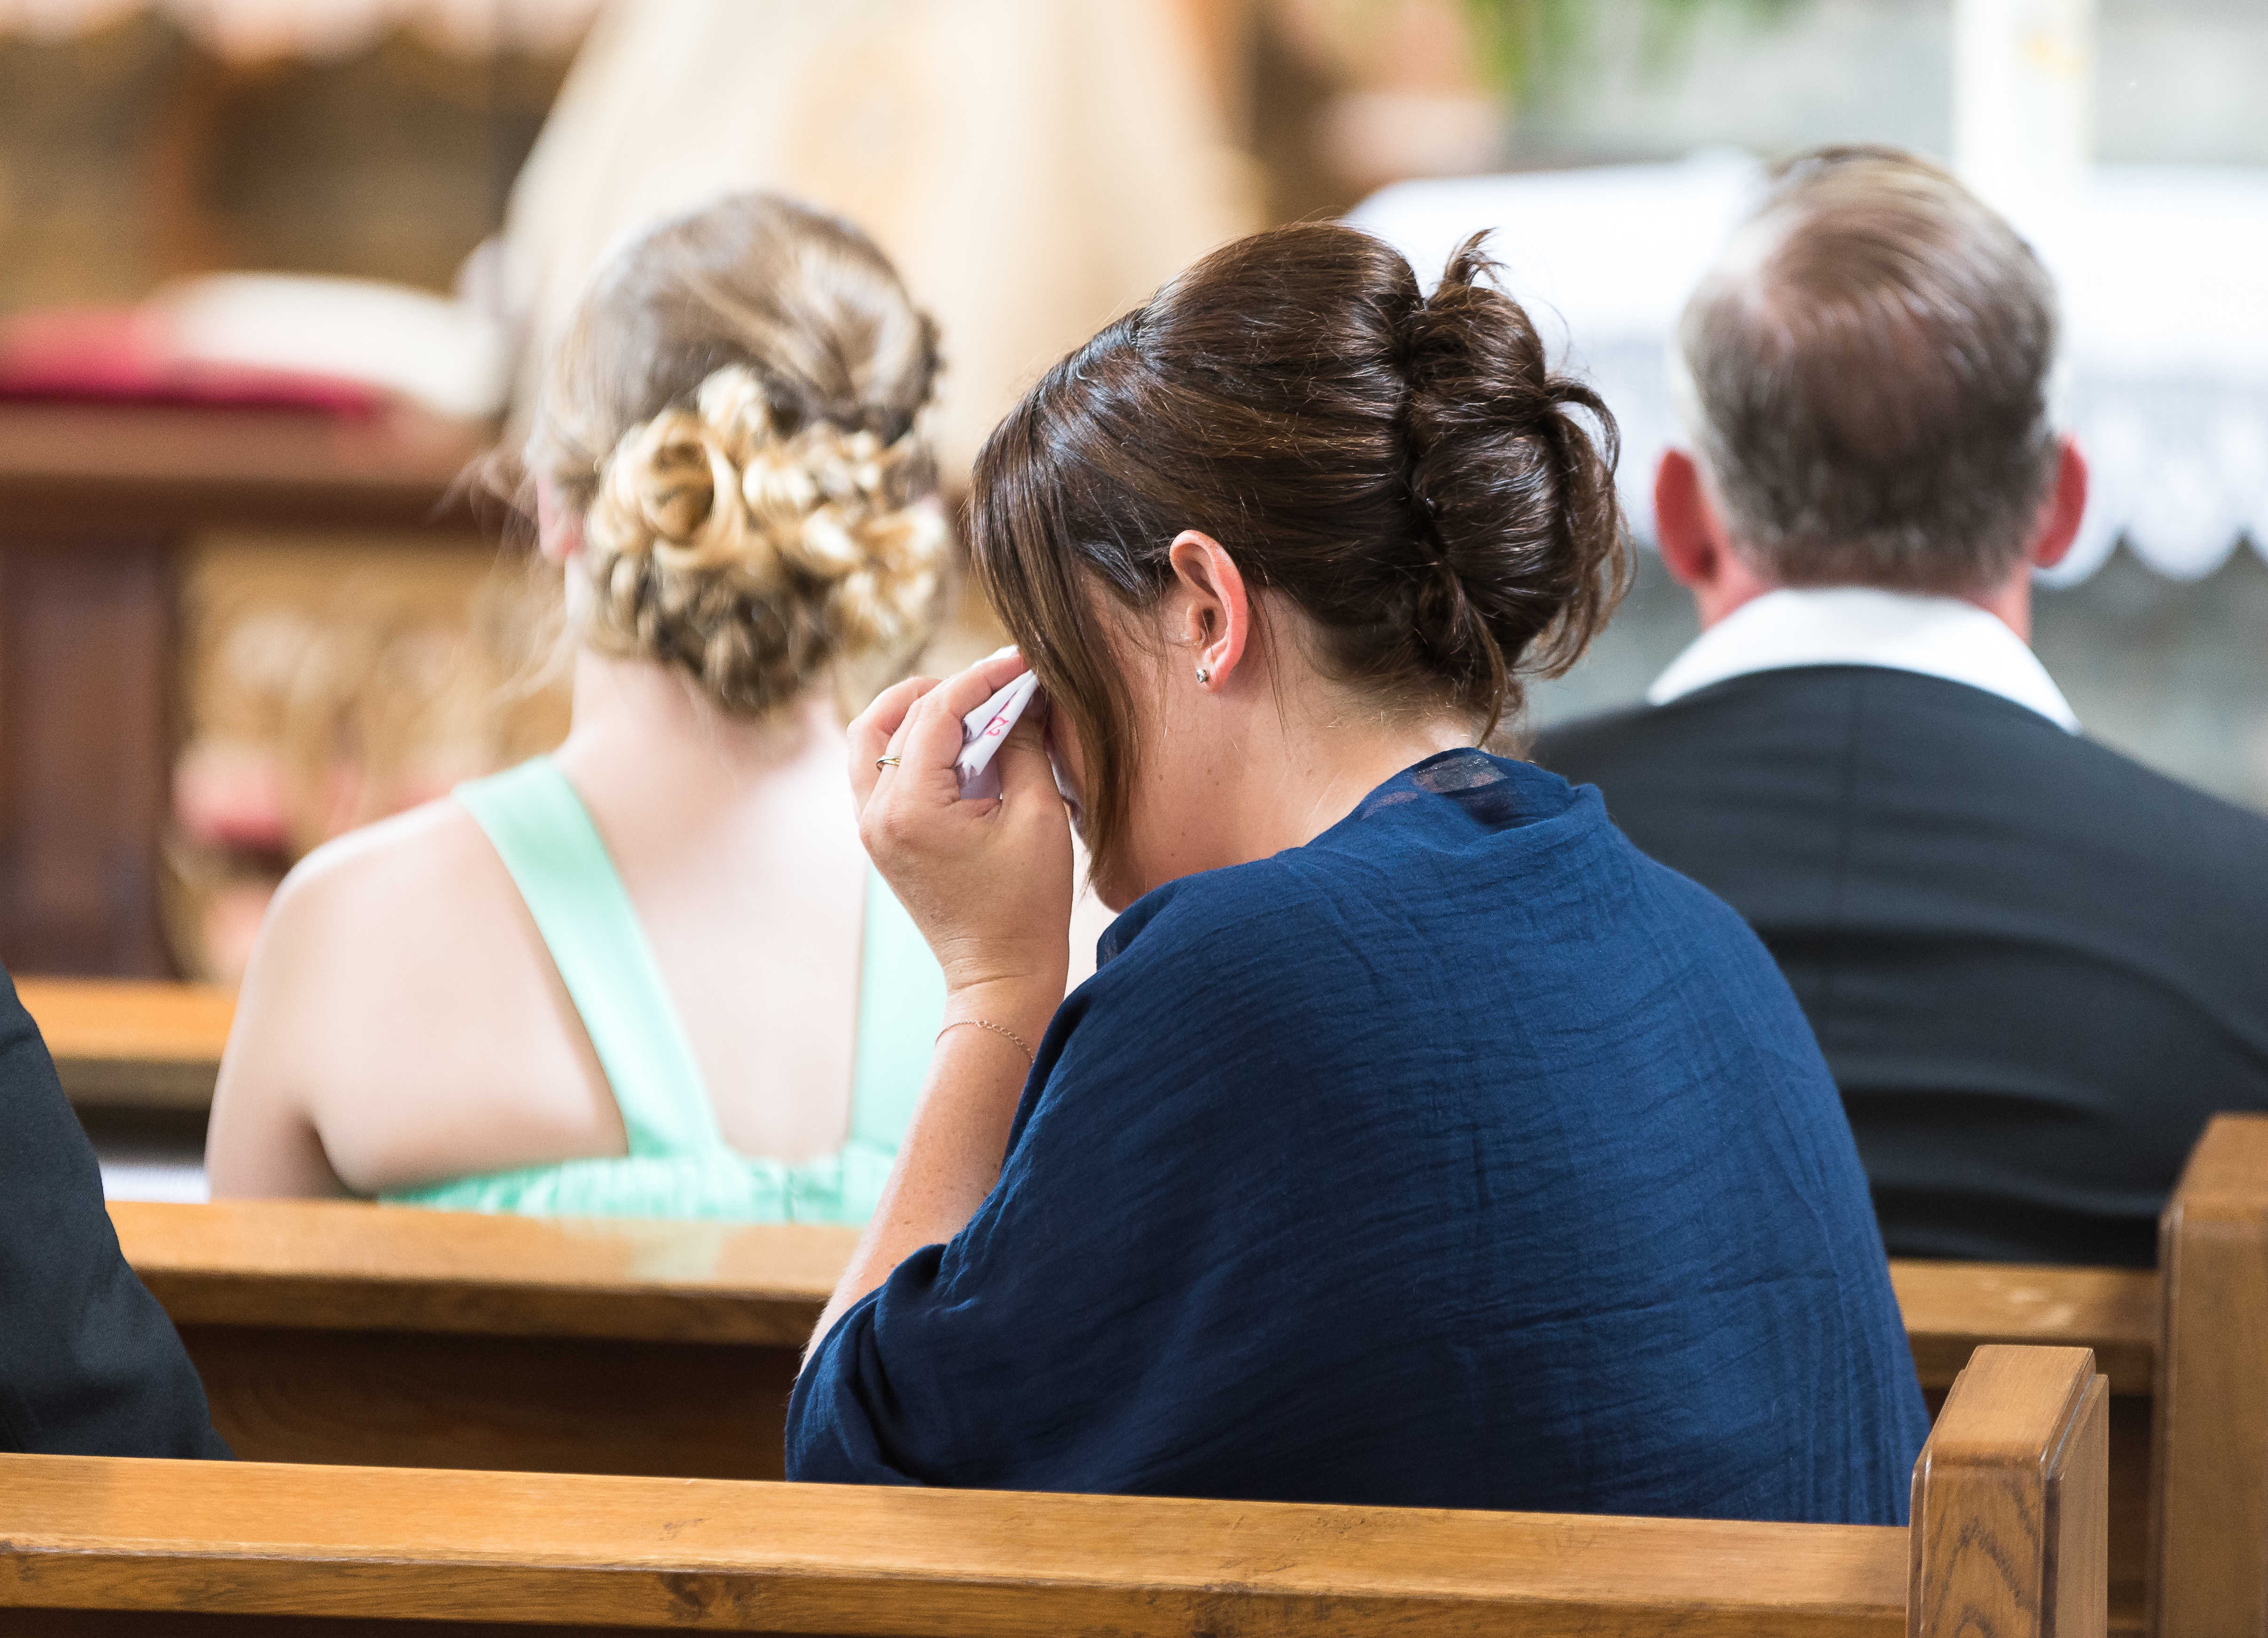 Woman wiping her eyes with tissue, sitting in church pew behind two other people.